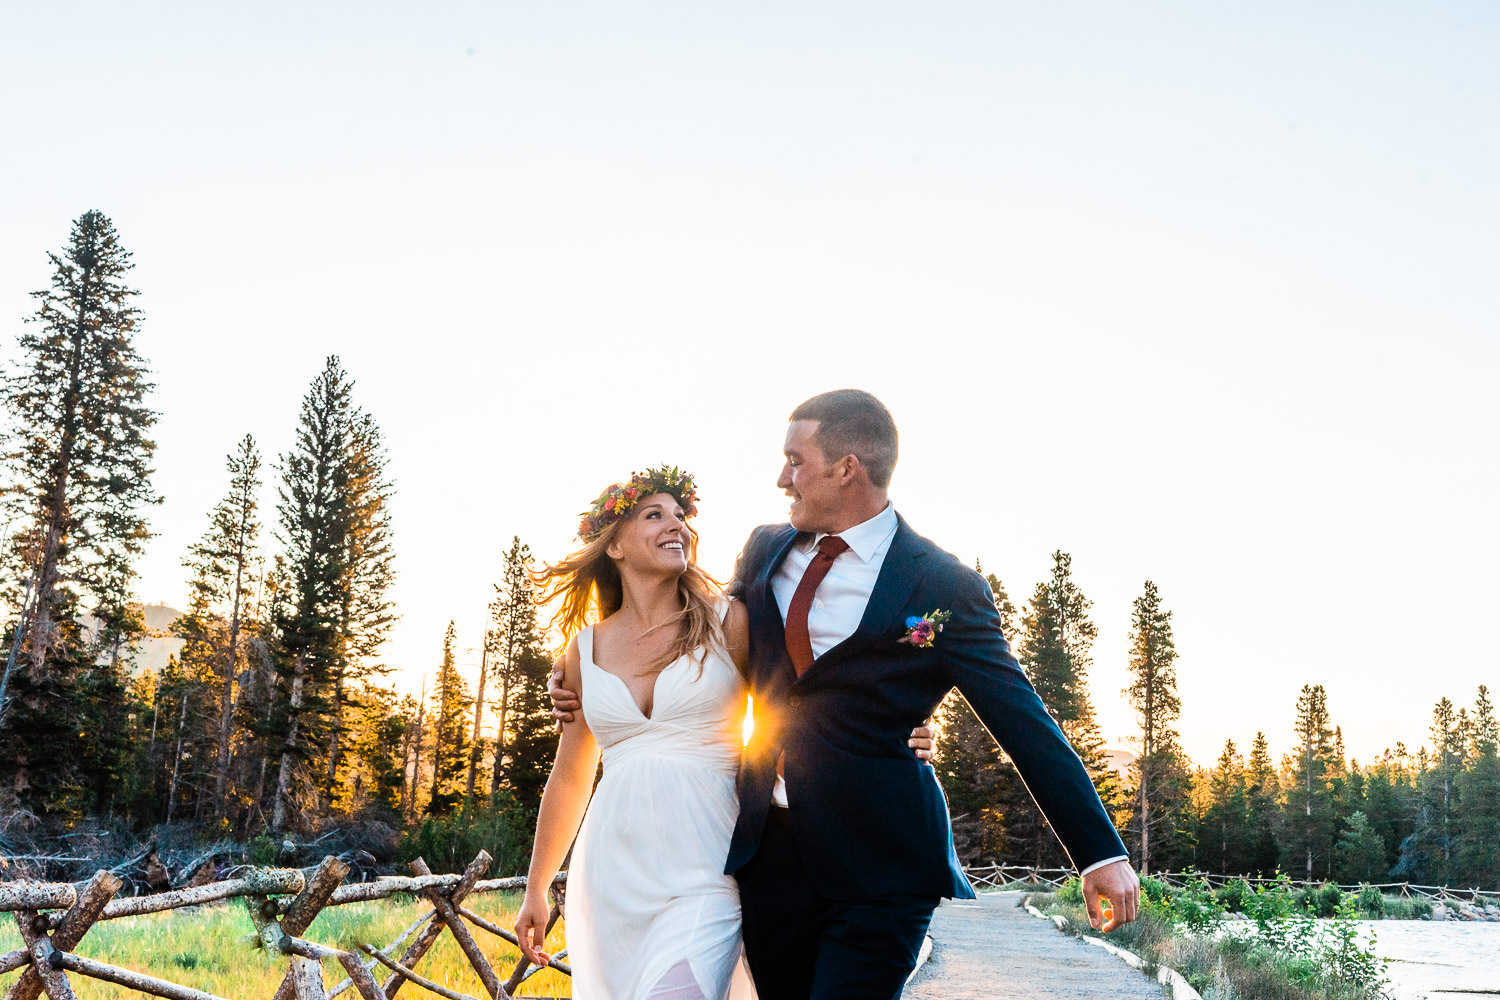 Sprague Lake Elopement | Run Wild With Me Photography